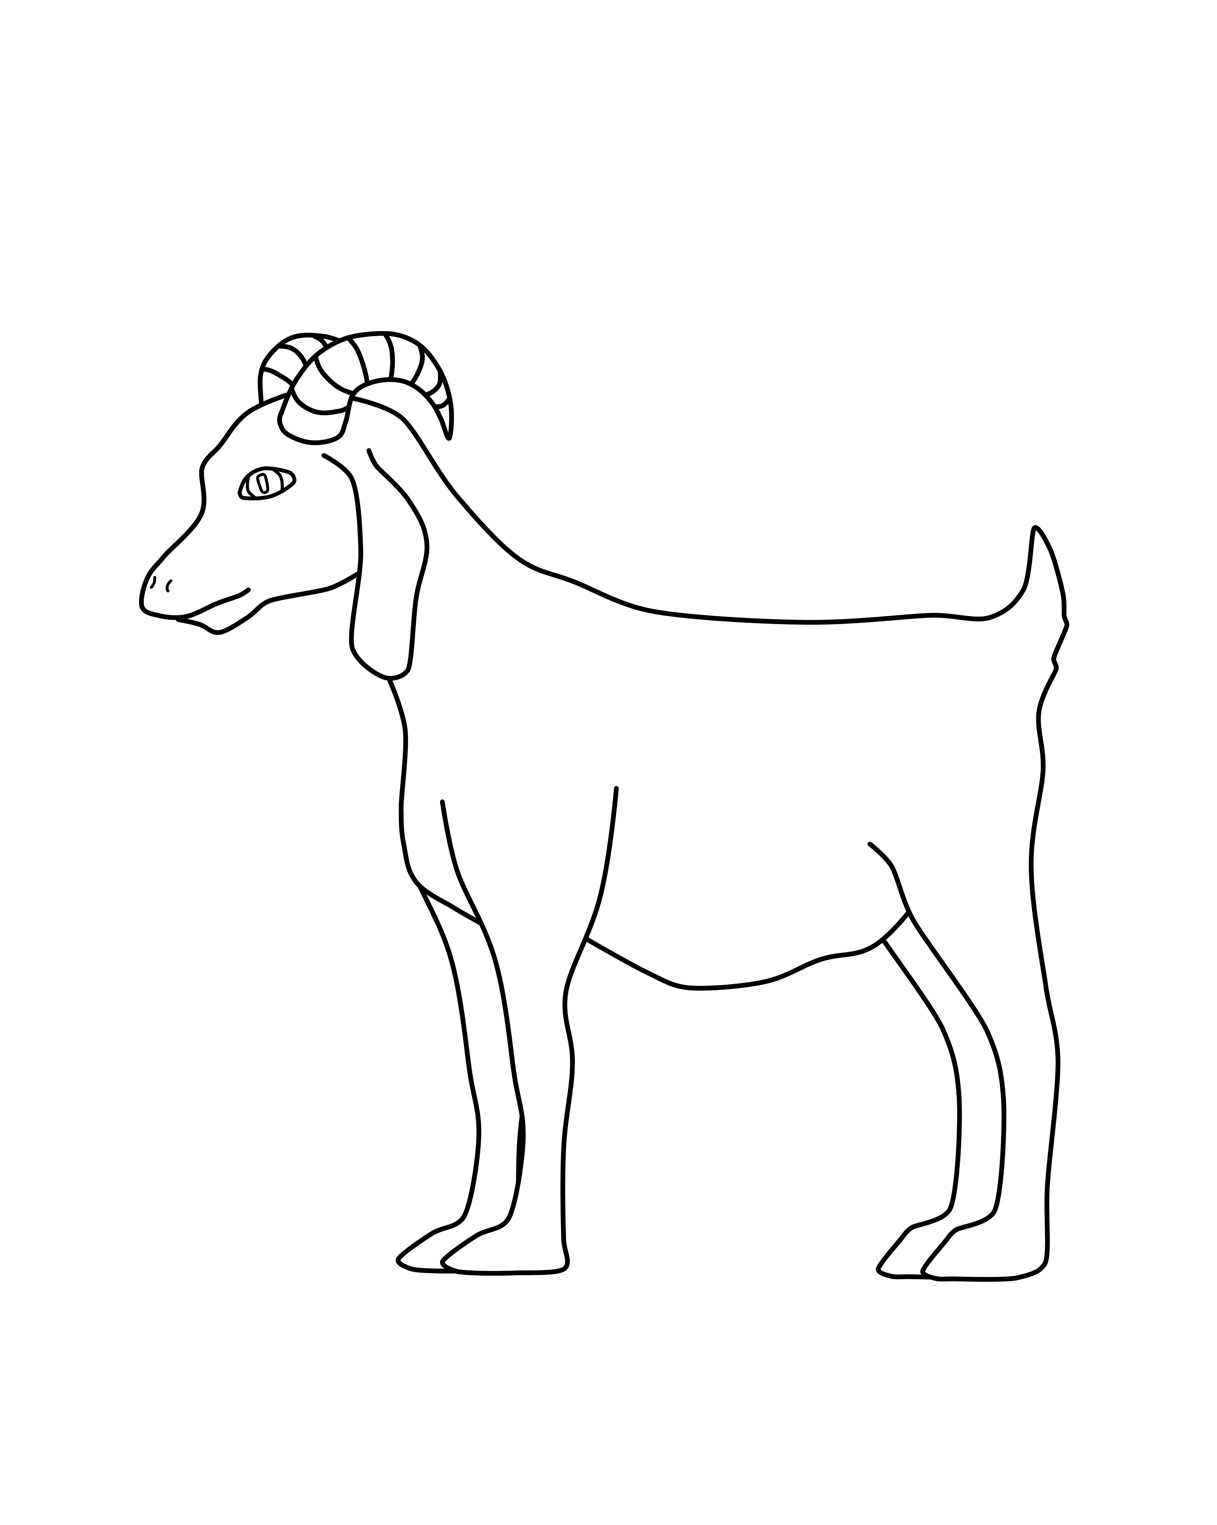 goat colouring picture free printable goat coloring pages for kids colouring goat picture